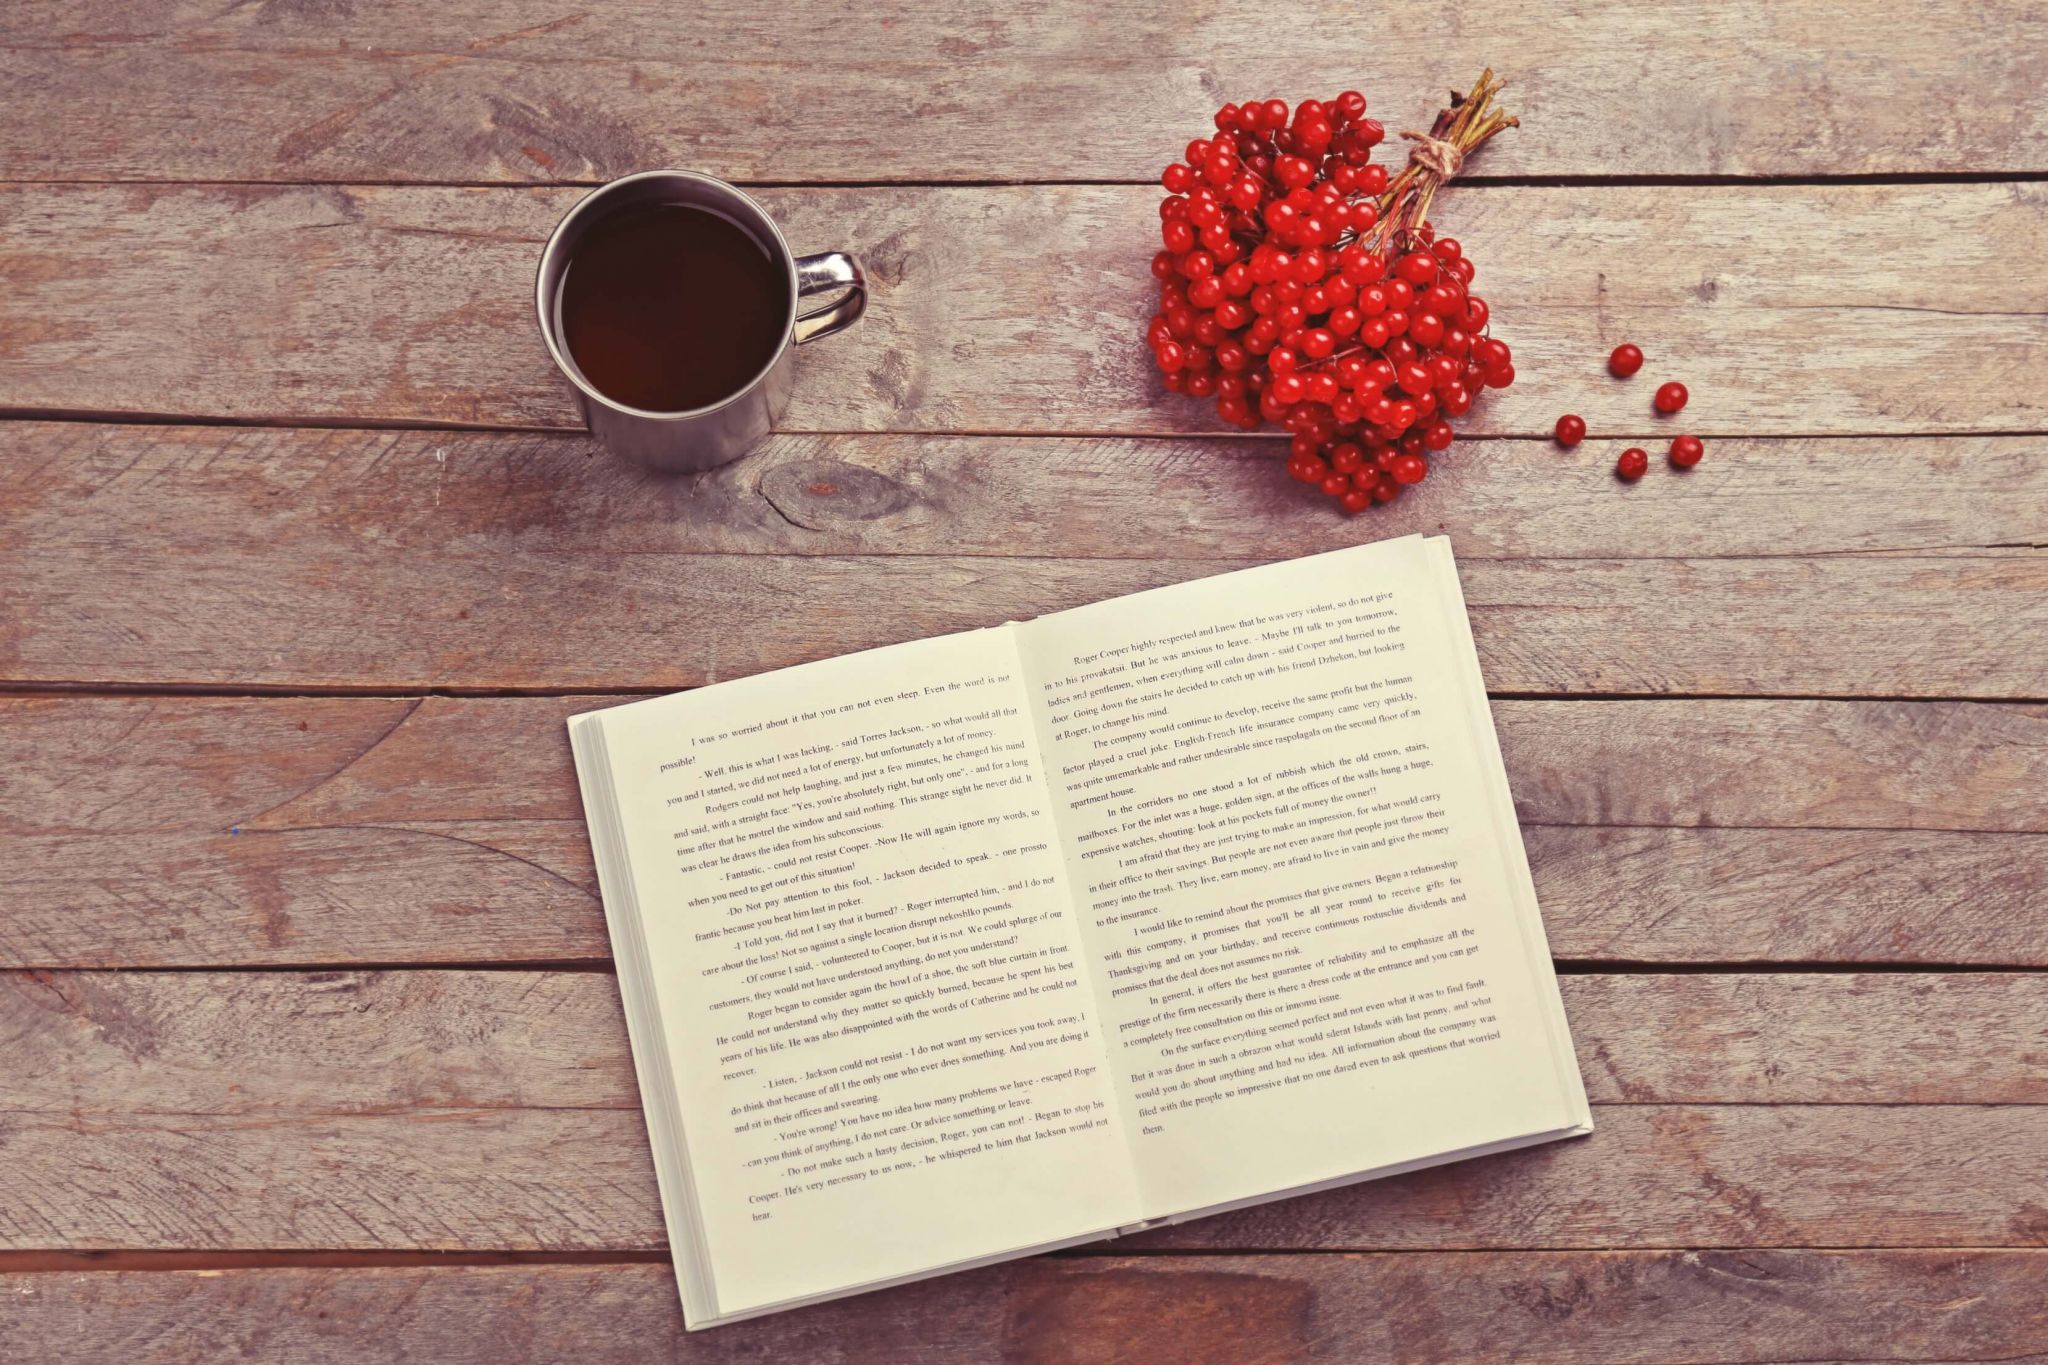 free and bargain books - silver coffee cup, red berries and open book on a wooden floor